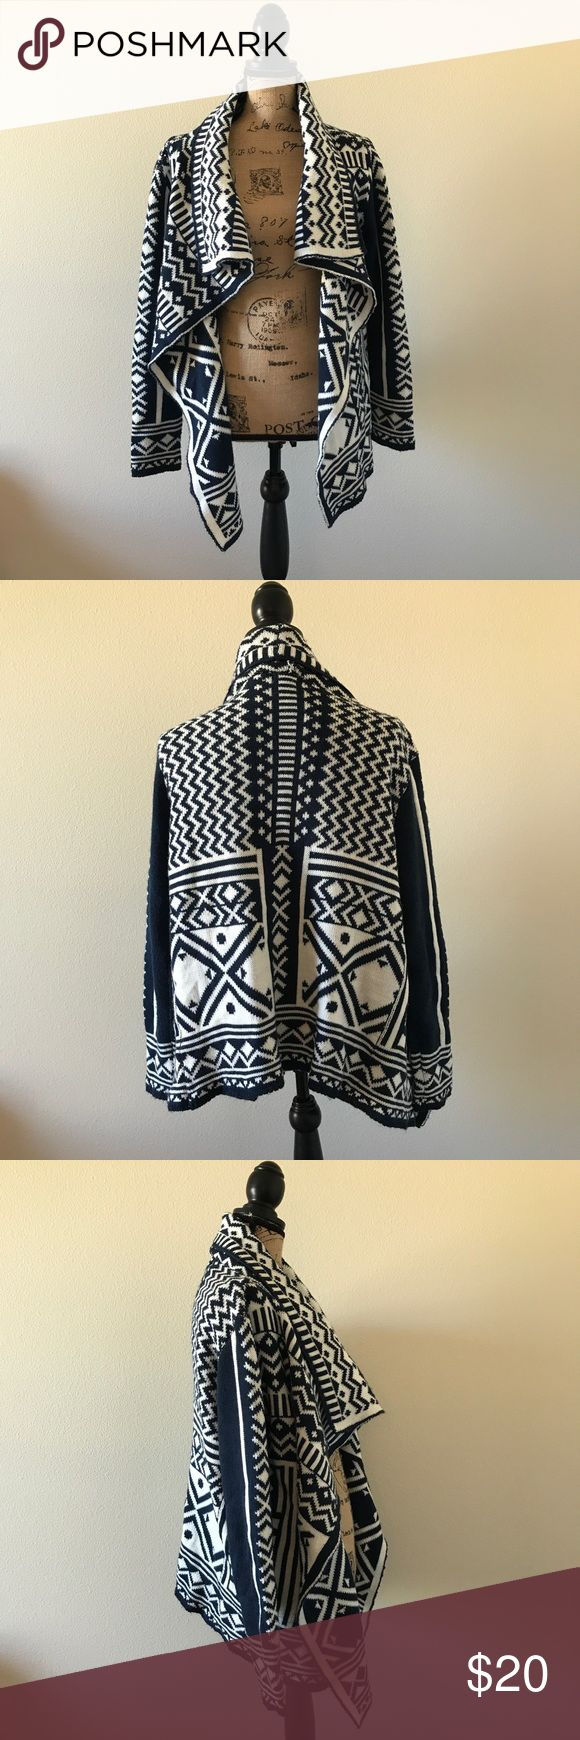 Woven Heart Tribal Print Cardigan Sweater Medium Woven Heart Tribal Print Cardigan Sweater Size Medium!  Navy and white color.  Very warm and comfortable!  Still in very good condition! Woven Heart Sweaters